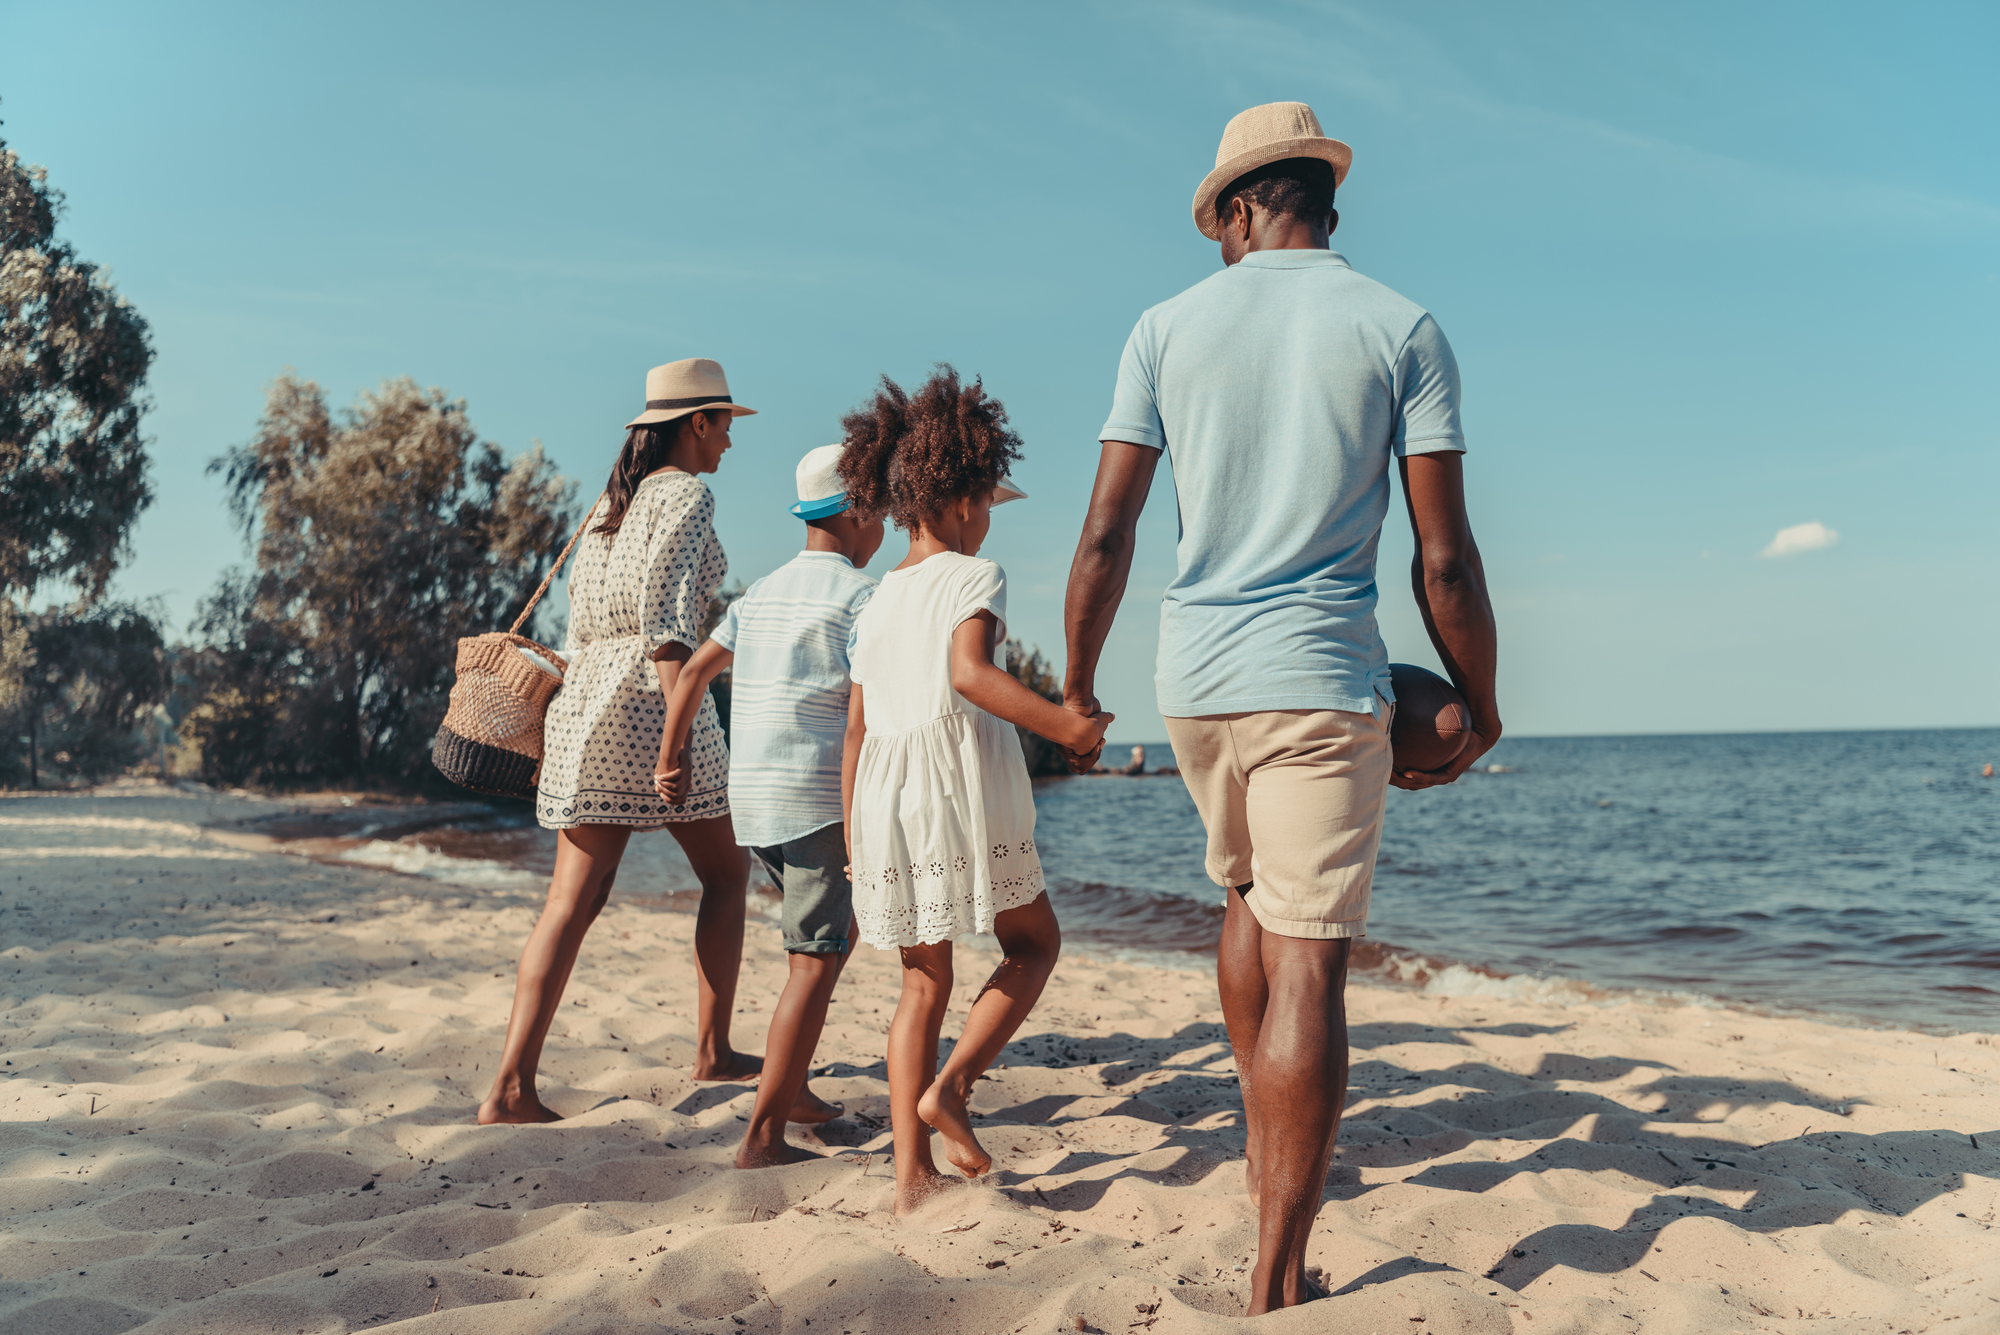 Life - The life insurance protection you need, for only as long as you need it.    A term life policy is ideal for someone who wants affordable life insurance protection during important life events such as marriage, birth, or adoption of children, buying a new home or starting a business.